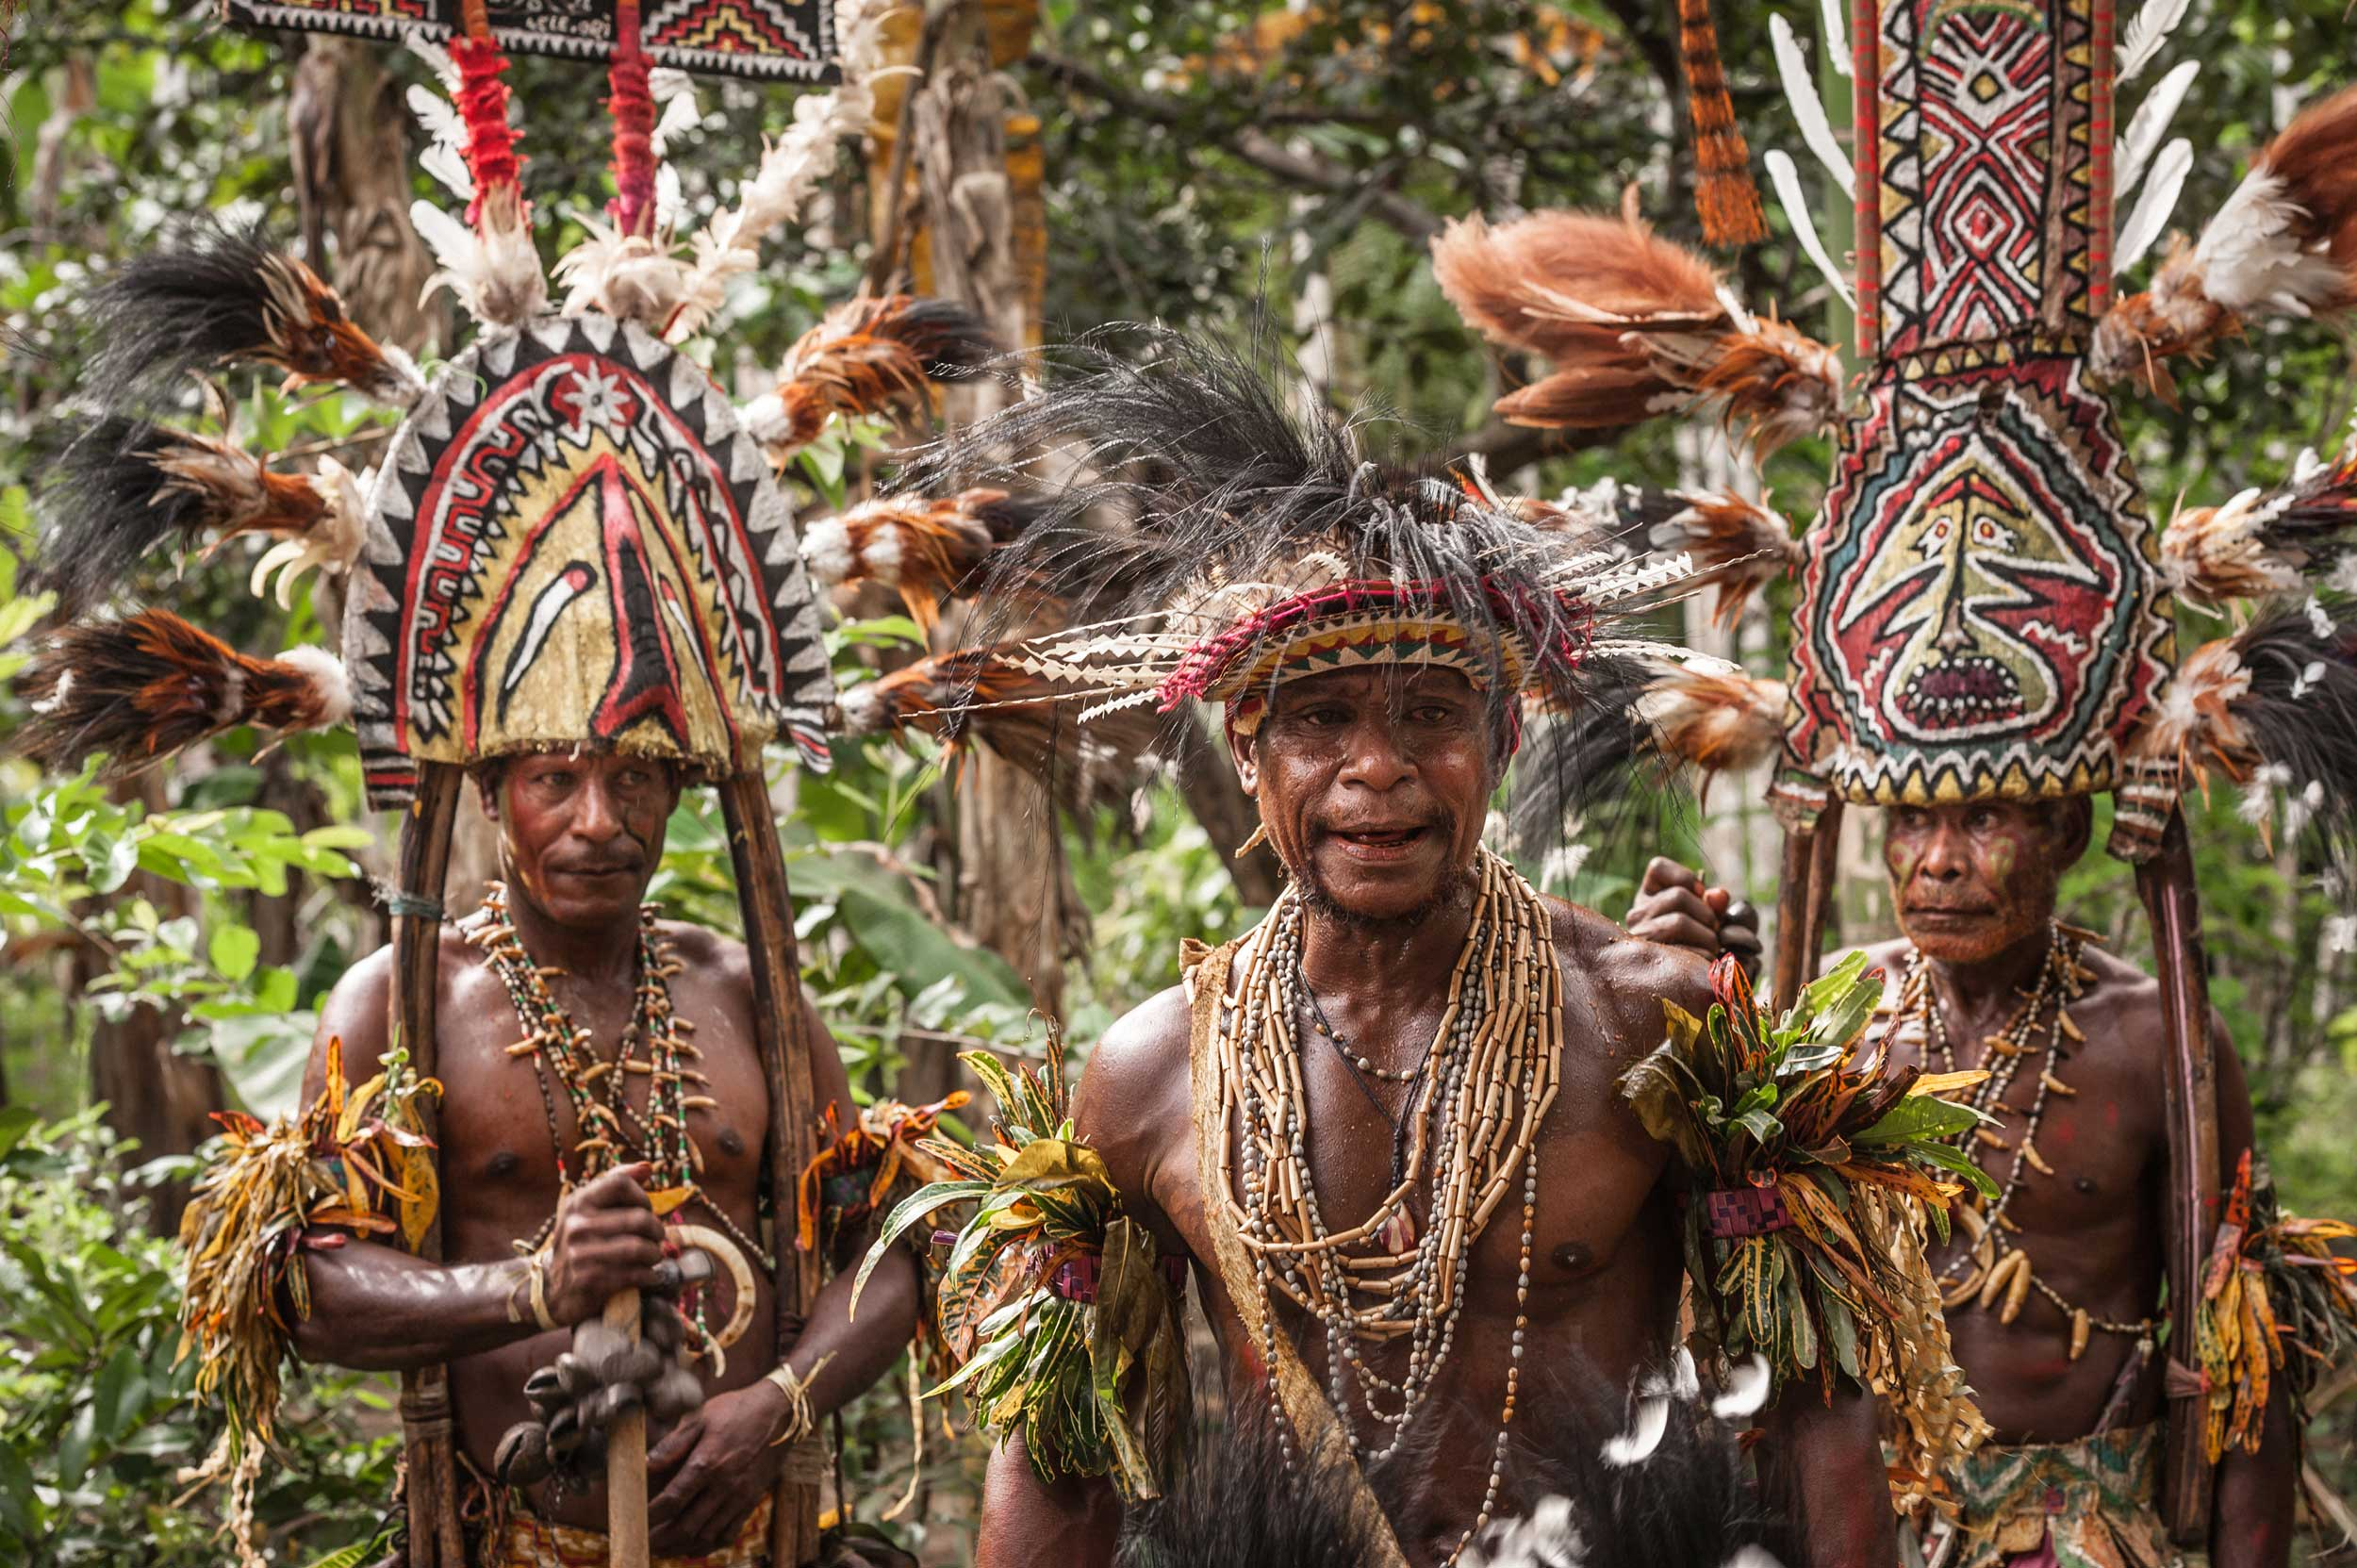 Tribal Papua New Guinea.